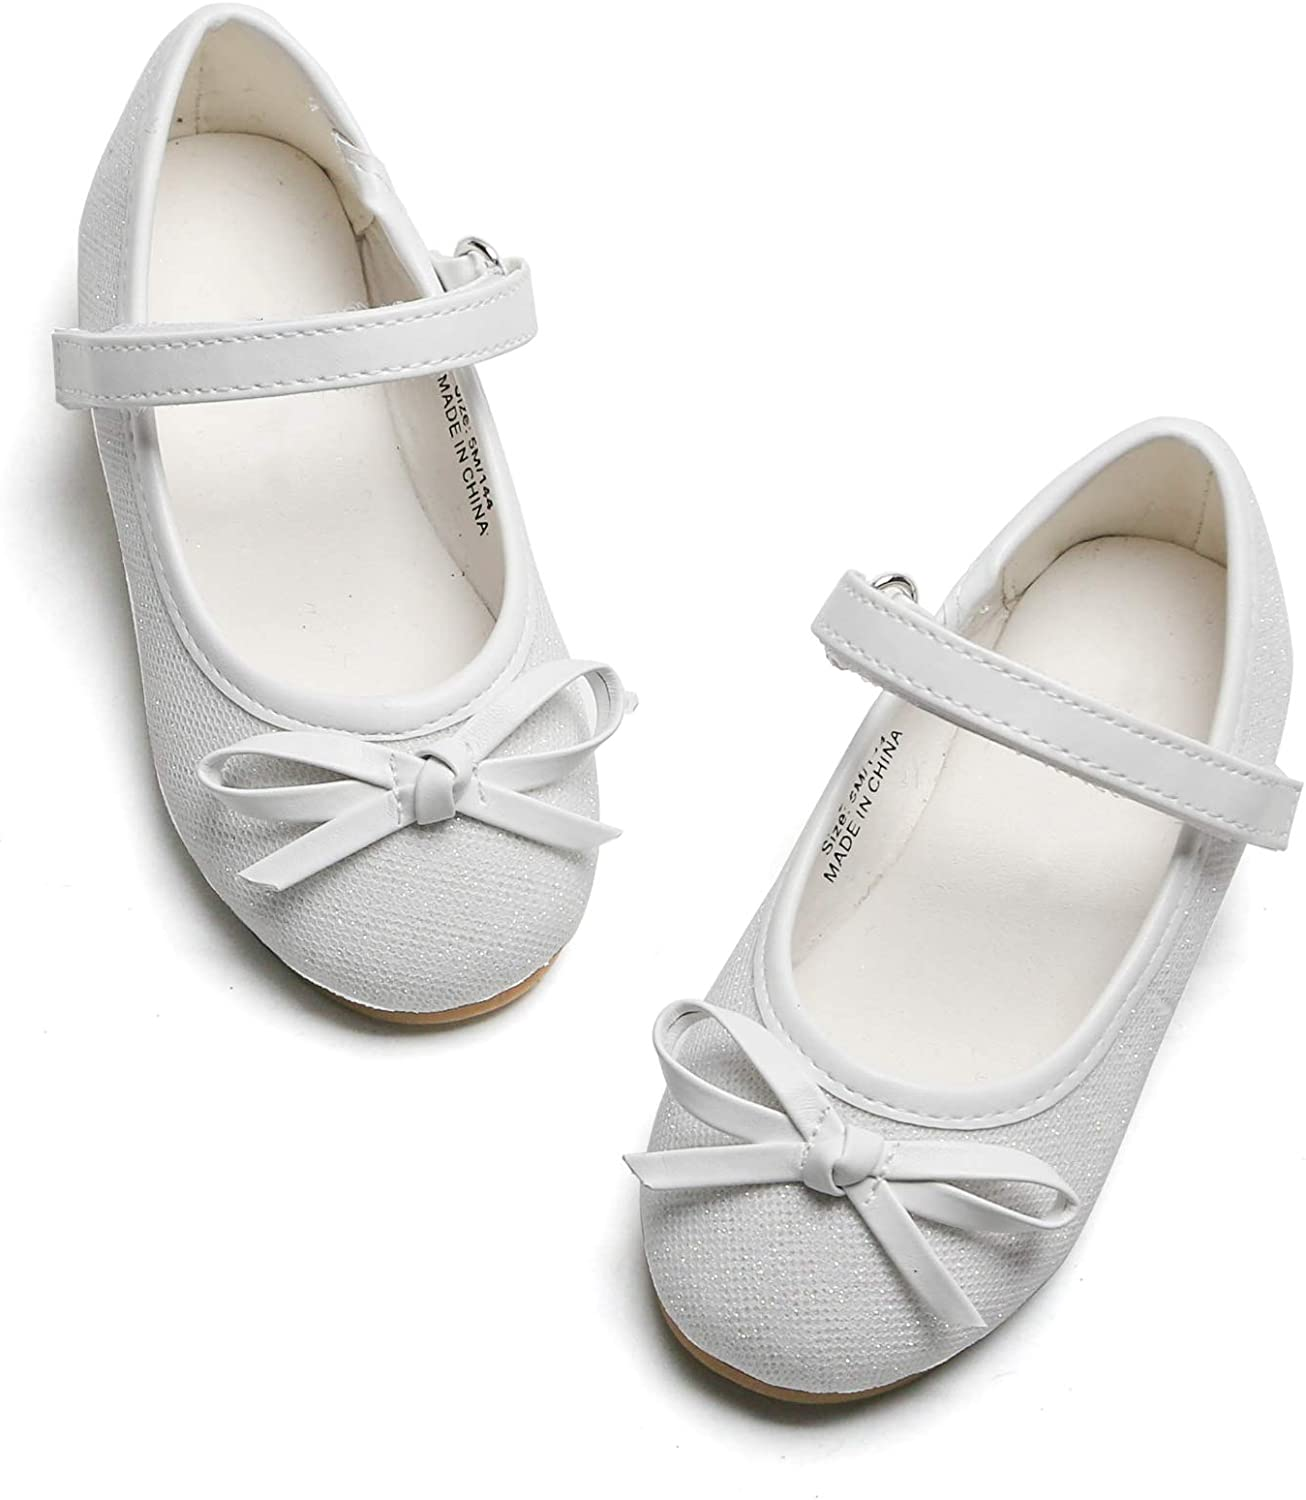 Girls Mary Jane Ballet Flat Kid Oklahoma City Mall Shoe Little Dress sold out Toddler